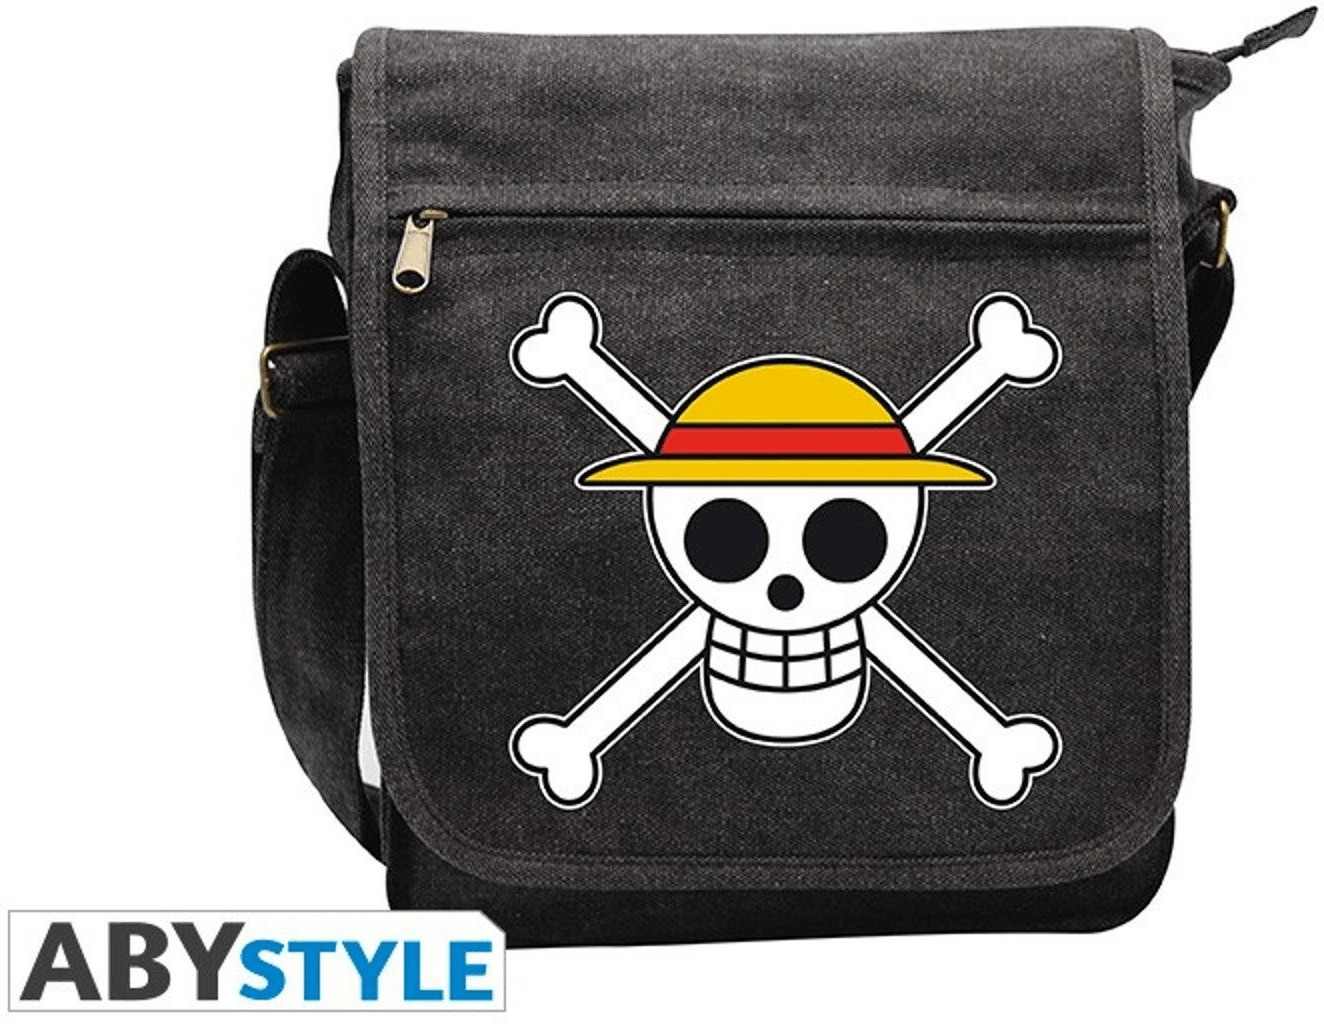 Abystyle One Piece Messenger Bag Skull anthracite